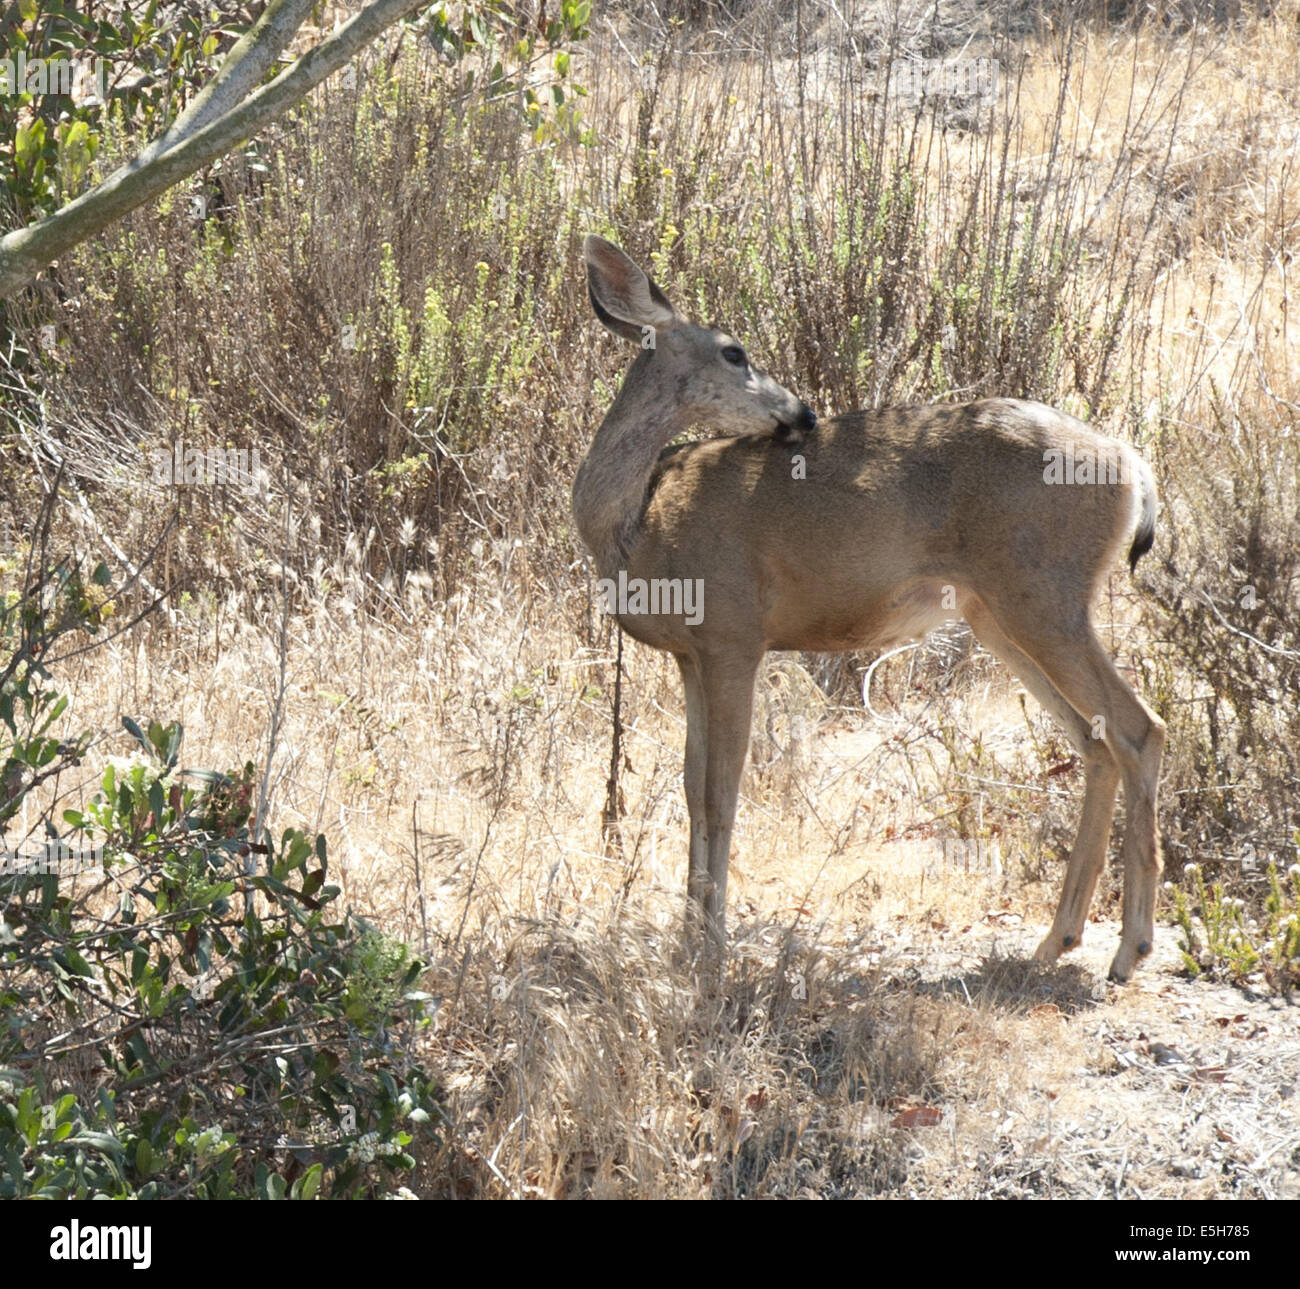 Laguna Beach, California, USA. 17th July, 2013. The California Mule Deer is common in Norhern, Central and the Coastal Prairie of California, feeding on low shrubs, grasses and berries. The California Mule Deer is distinguishable for its large and long mule like ears and can usually be found nearer water sources like streams, creeks, lakes and ponds.----Odocoileus hemionus californicus --- In the photo, a pair of mule deer could be seen working their way along a hillside at El Moro Creek in Crystal Cove State Beach, Orange County. © David Bro/ZUMA Wire/Alamy Live News Stock Photo